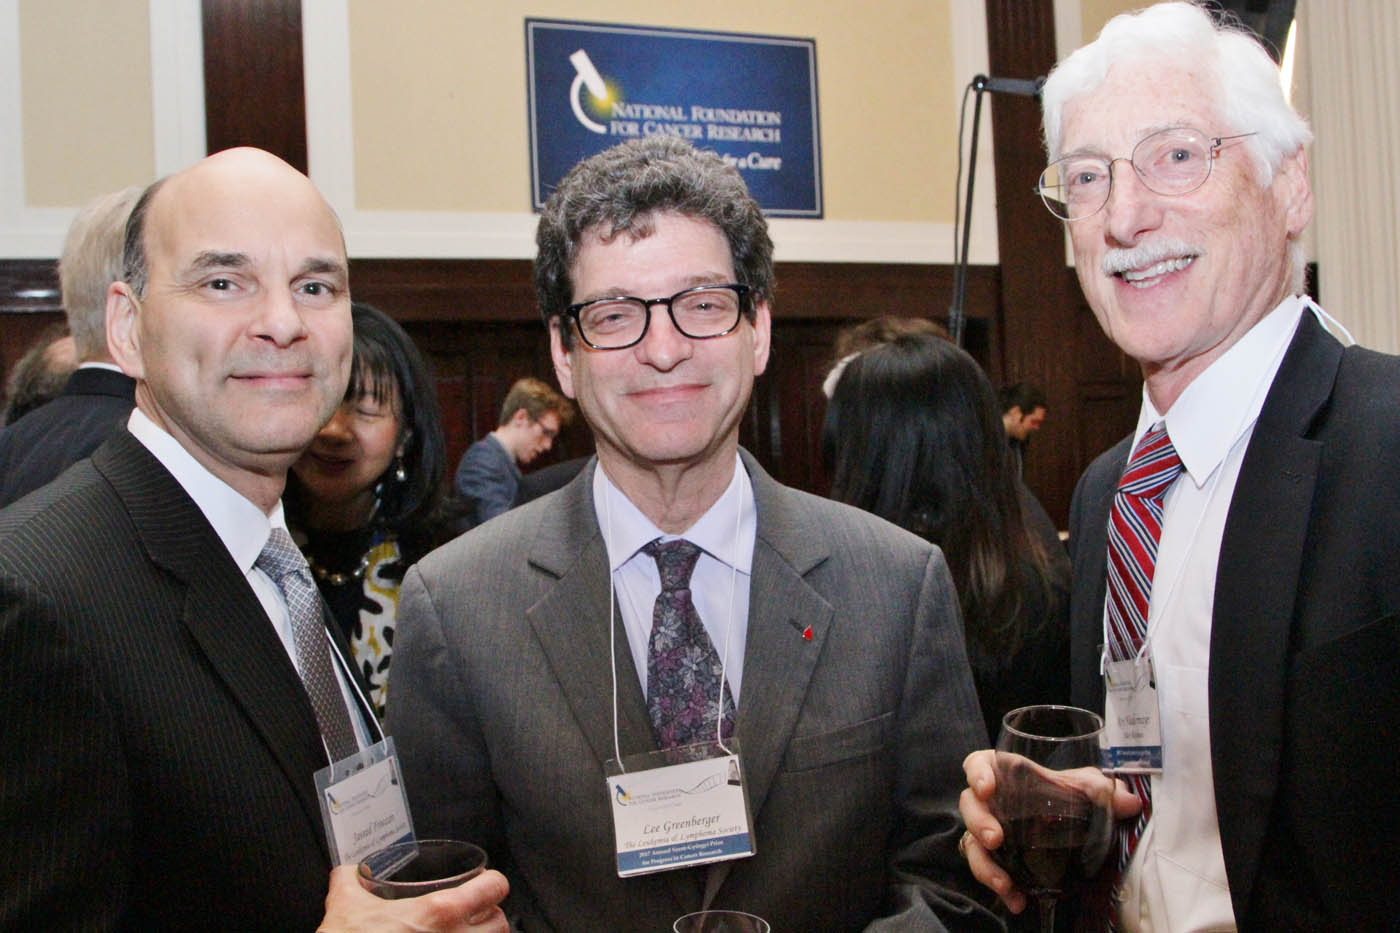 Paley Rothman's Roy Nidermayer meeting Lee Greenberger and Javeed Froozan of the Lekemia & Lymphoma Society